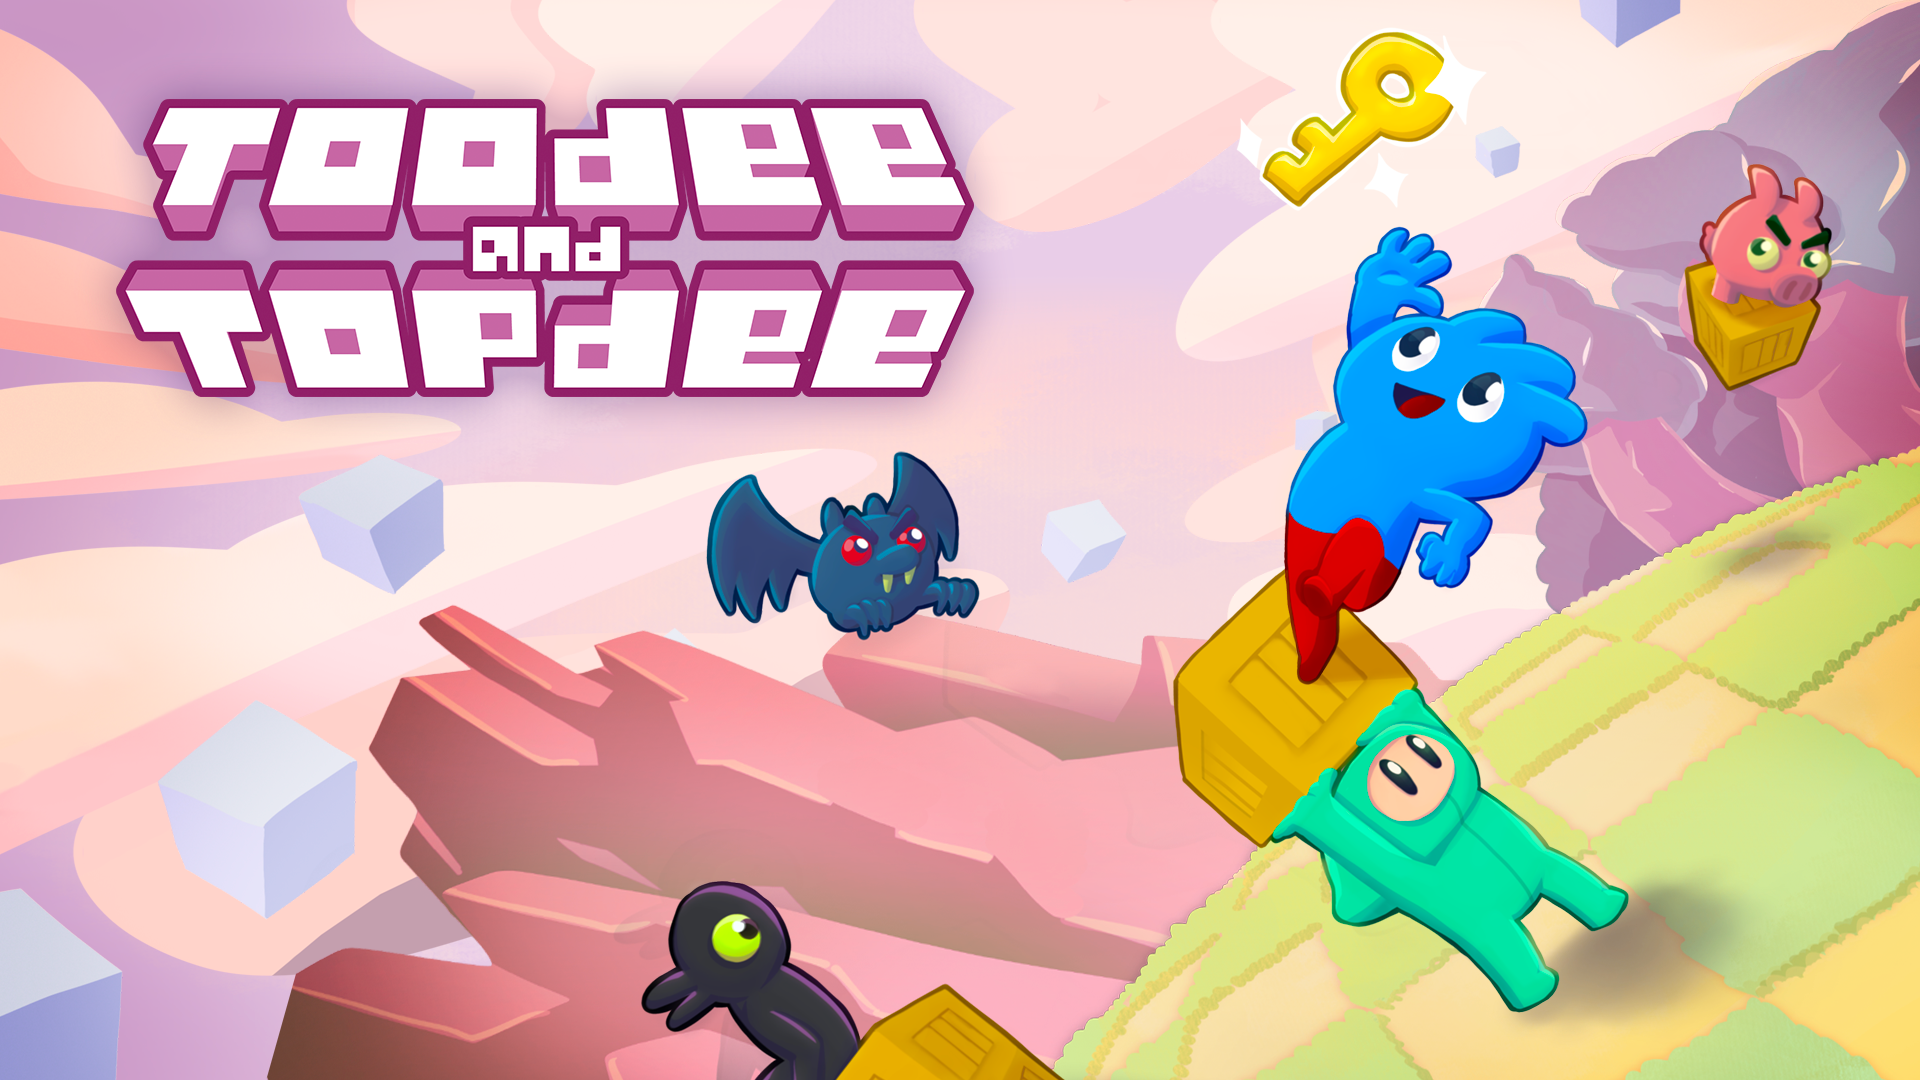 Toodee and Topdee review